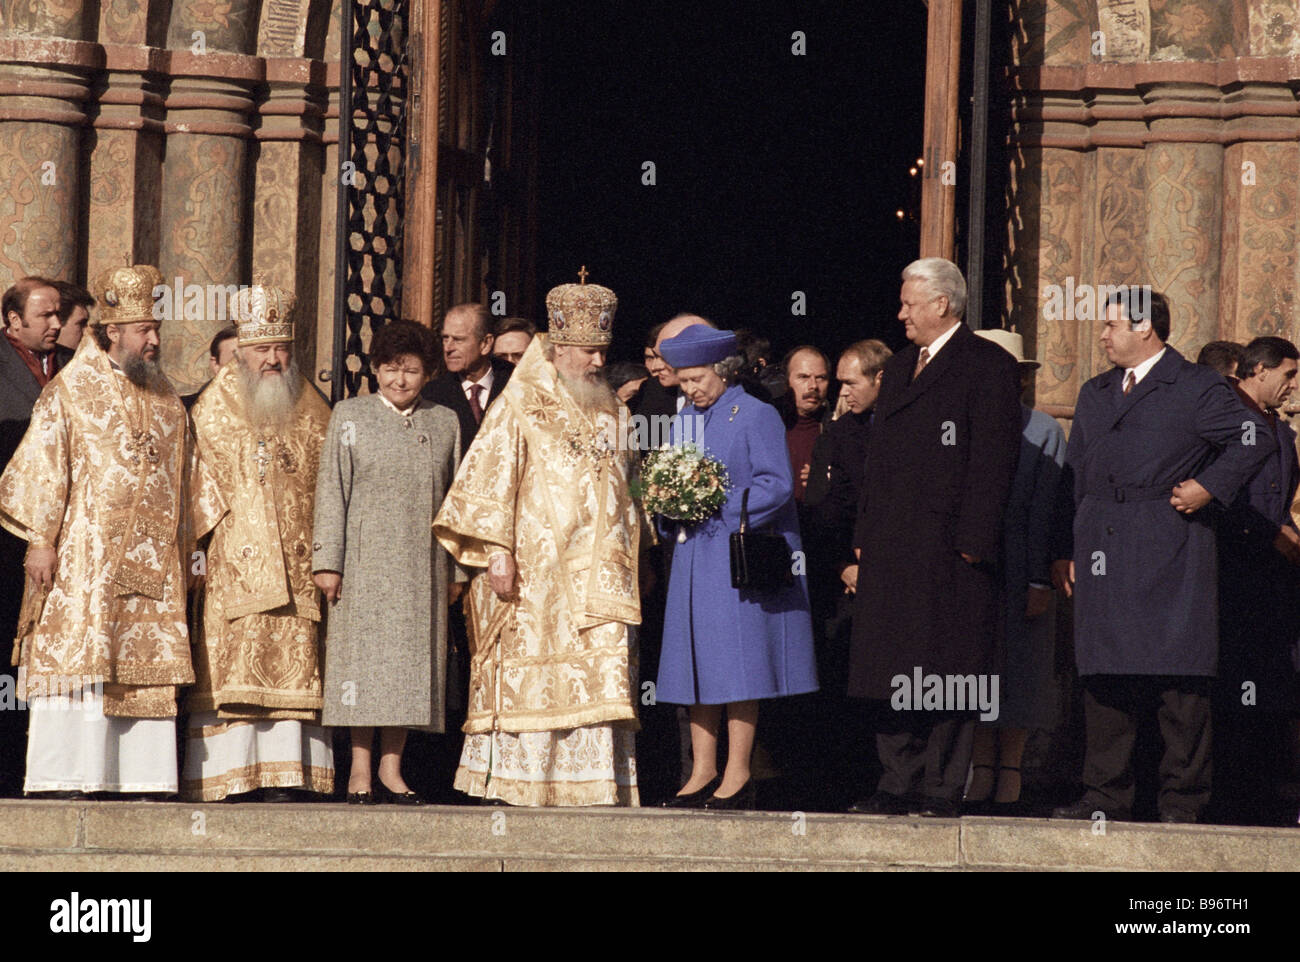 Queen Elizabeth II of the United Kingdom of Great Britain and Northern Ireland in the Moscow Kremlin s Assumption Stock Photo